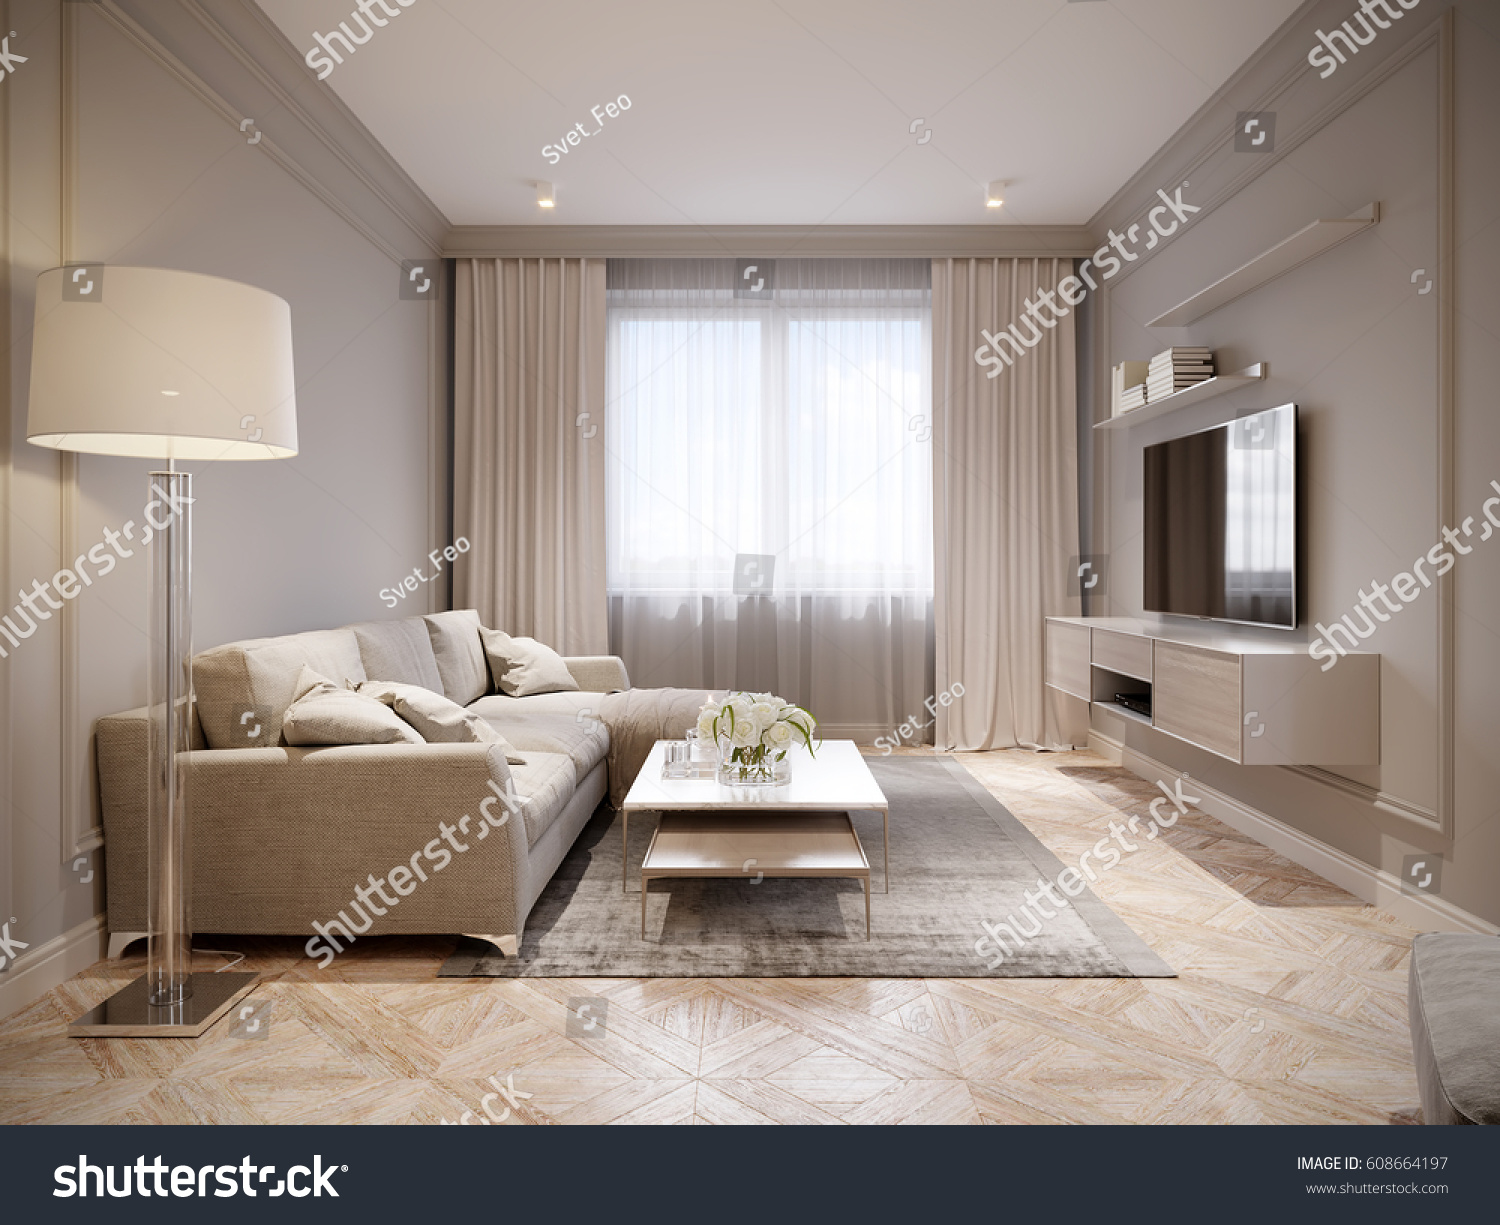 Design Beige Room modern beige gray living room interior stock illustration design with large light sofa and white curtains